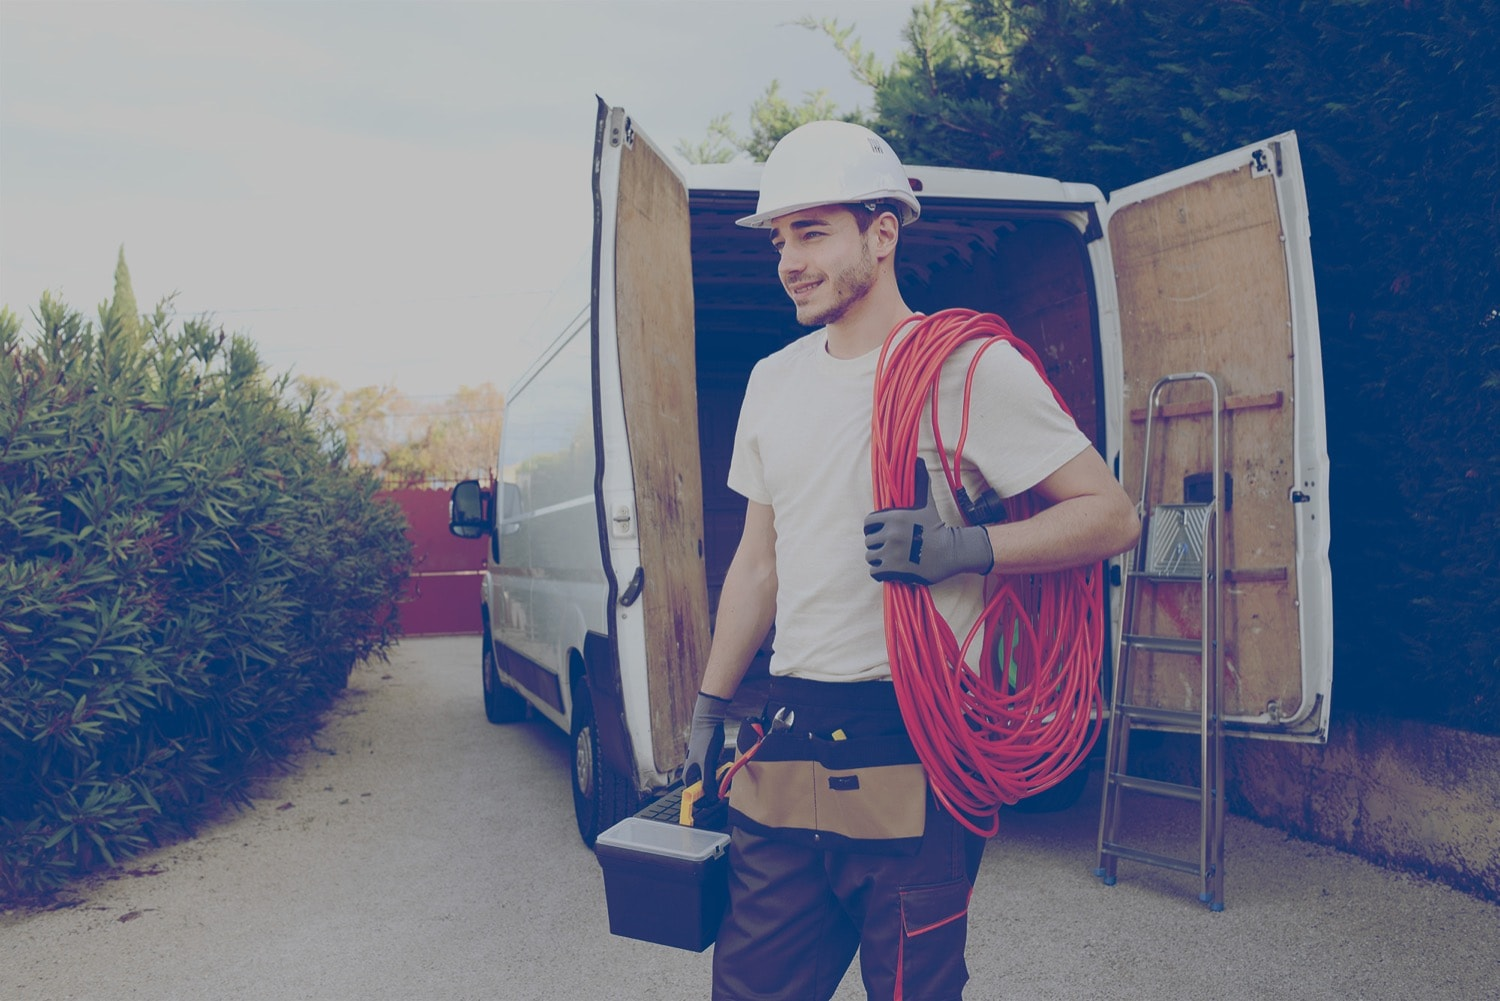 A male construction worker in a white hard hat carrying his tools from his van to the job site.